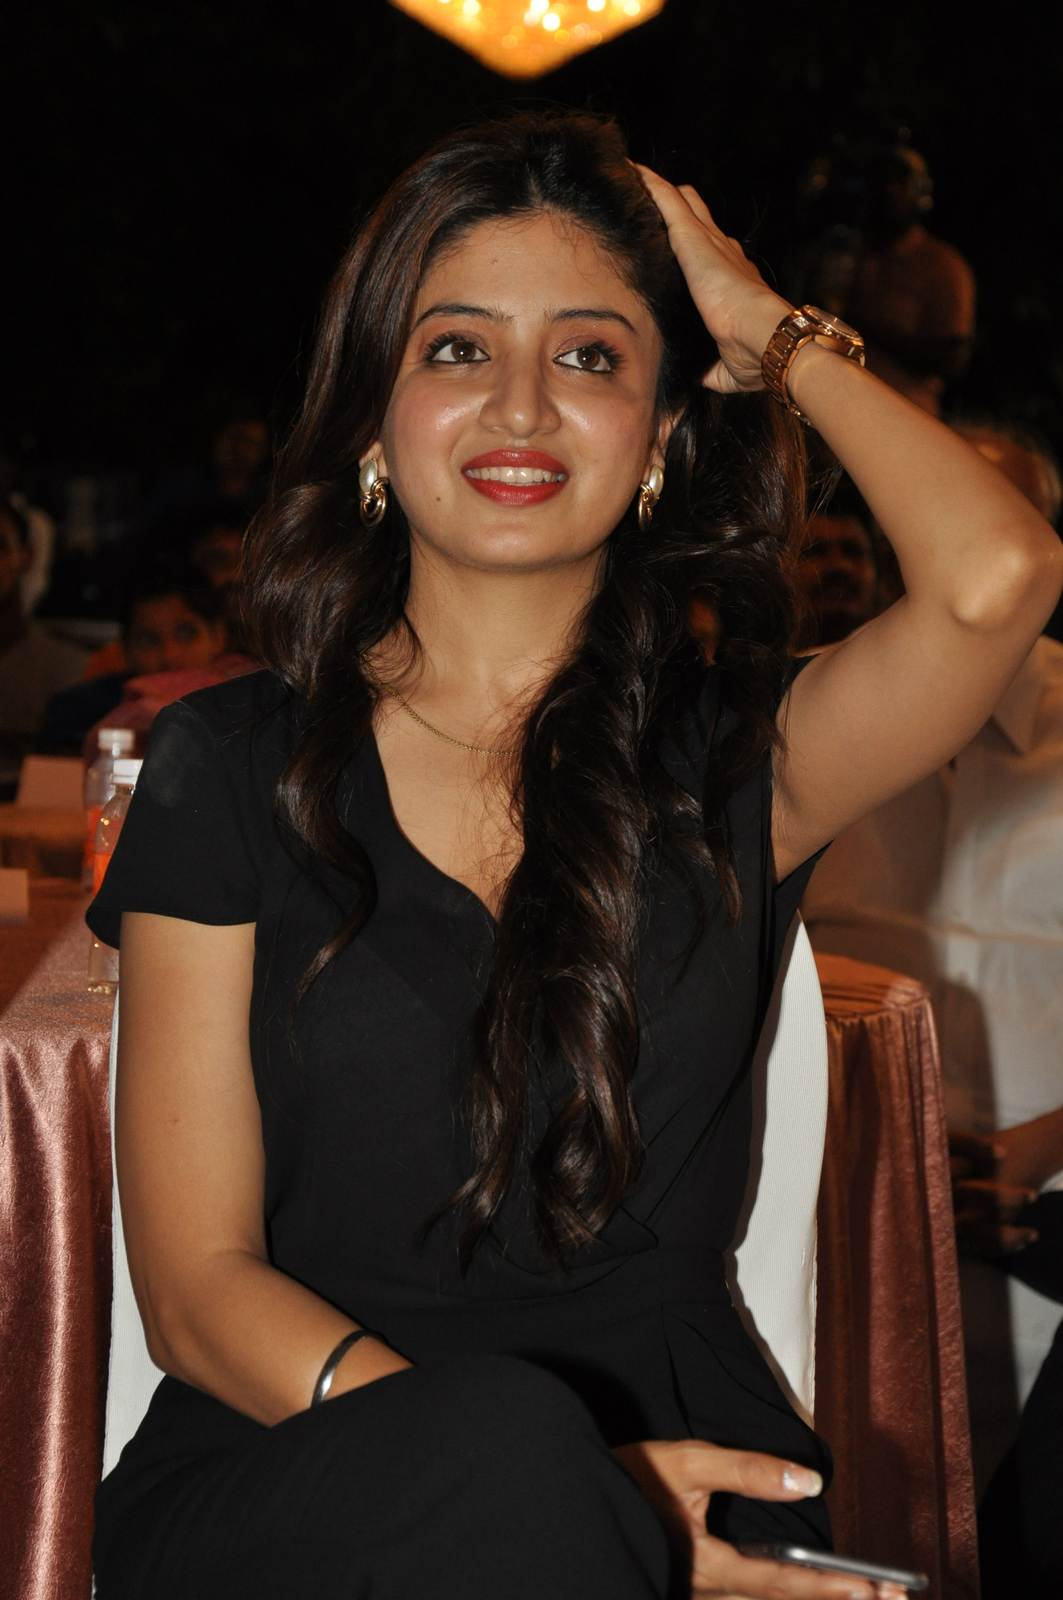 Telugu Actress Poonam Kaur, Poonam Kaur hot Pics in black Dress from 365 Days Movie Audio Launch